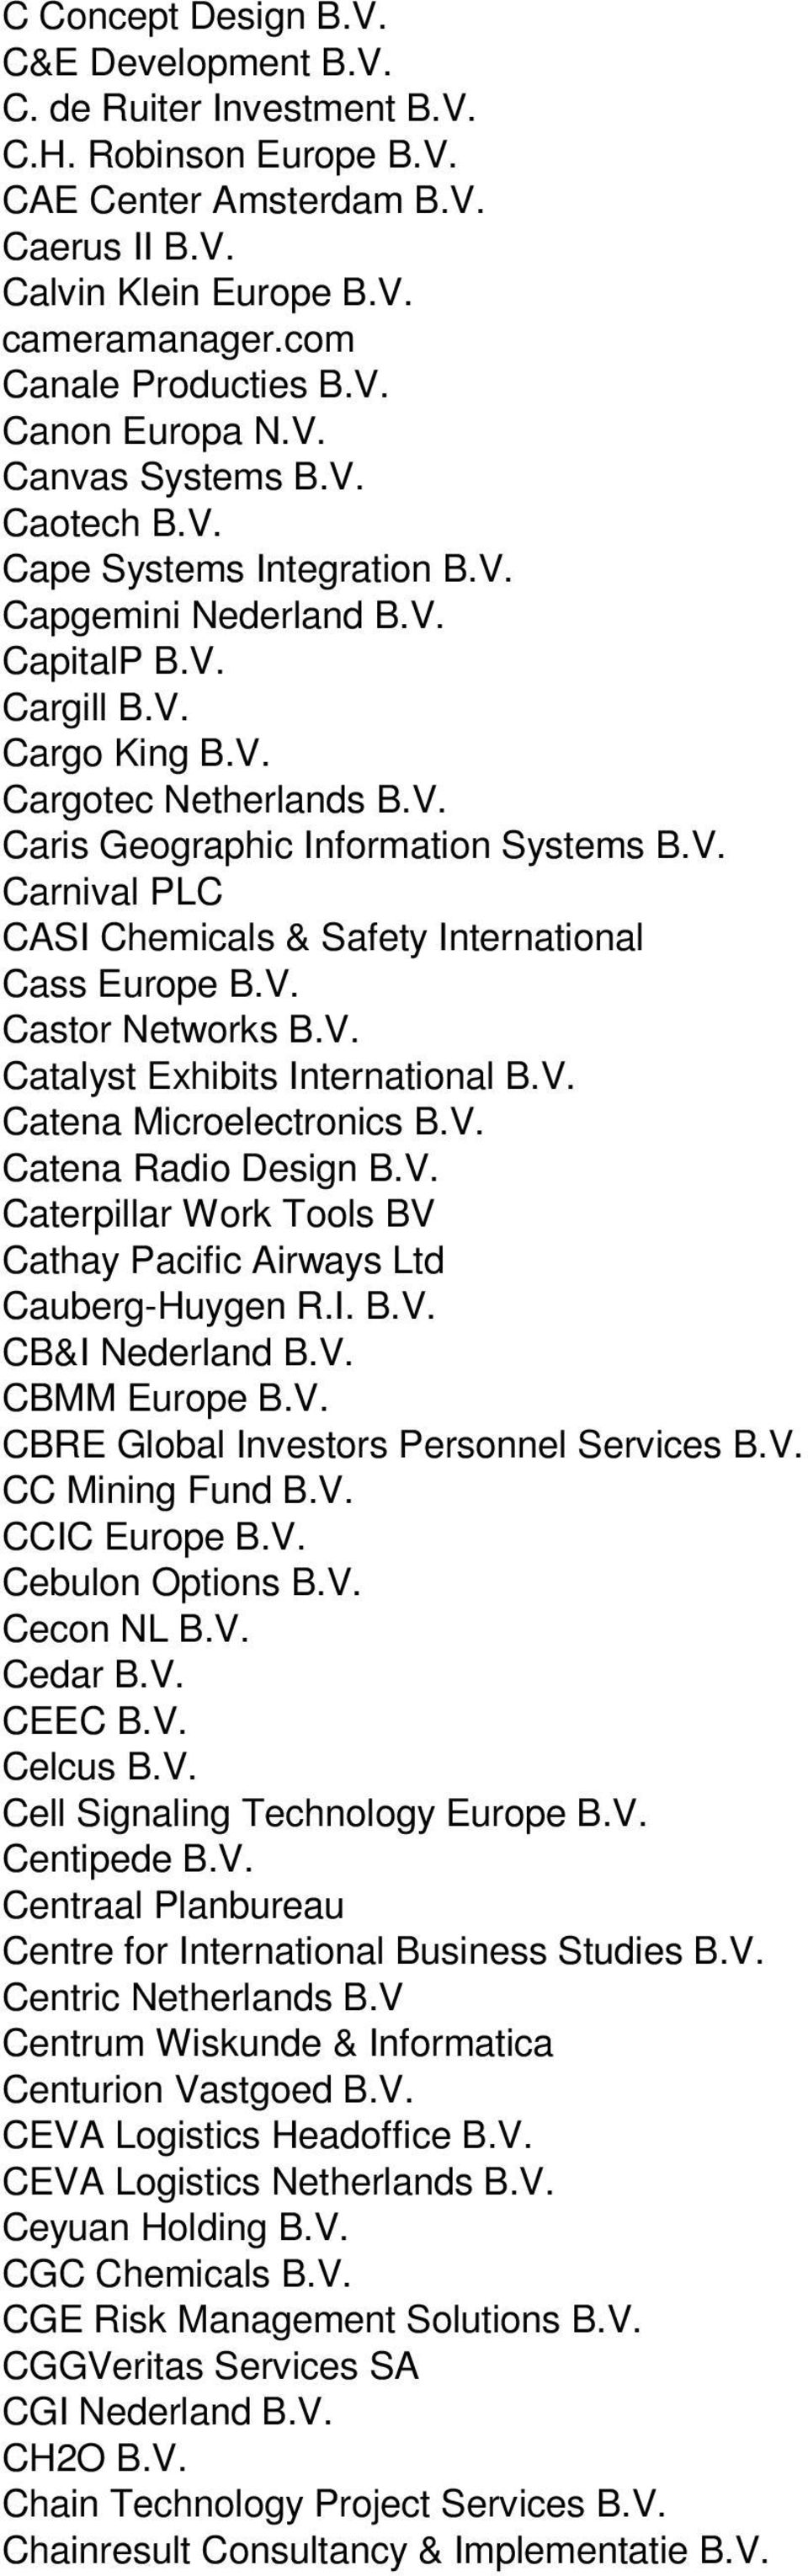 V. Caris Geographic Information Systems B.V. Carnival PLC CASI Chemicals & Safety International Cass Europe B.V. Castor Networks B.V. Catalyst Exhibits International B.V. Catena Microelectronics B.V. Catena Radio Design B.